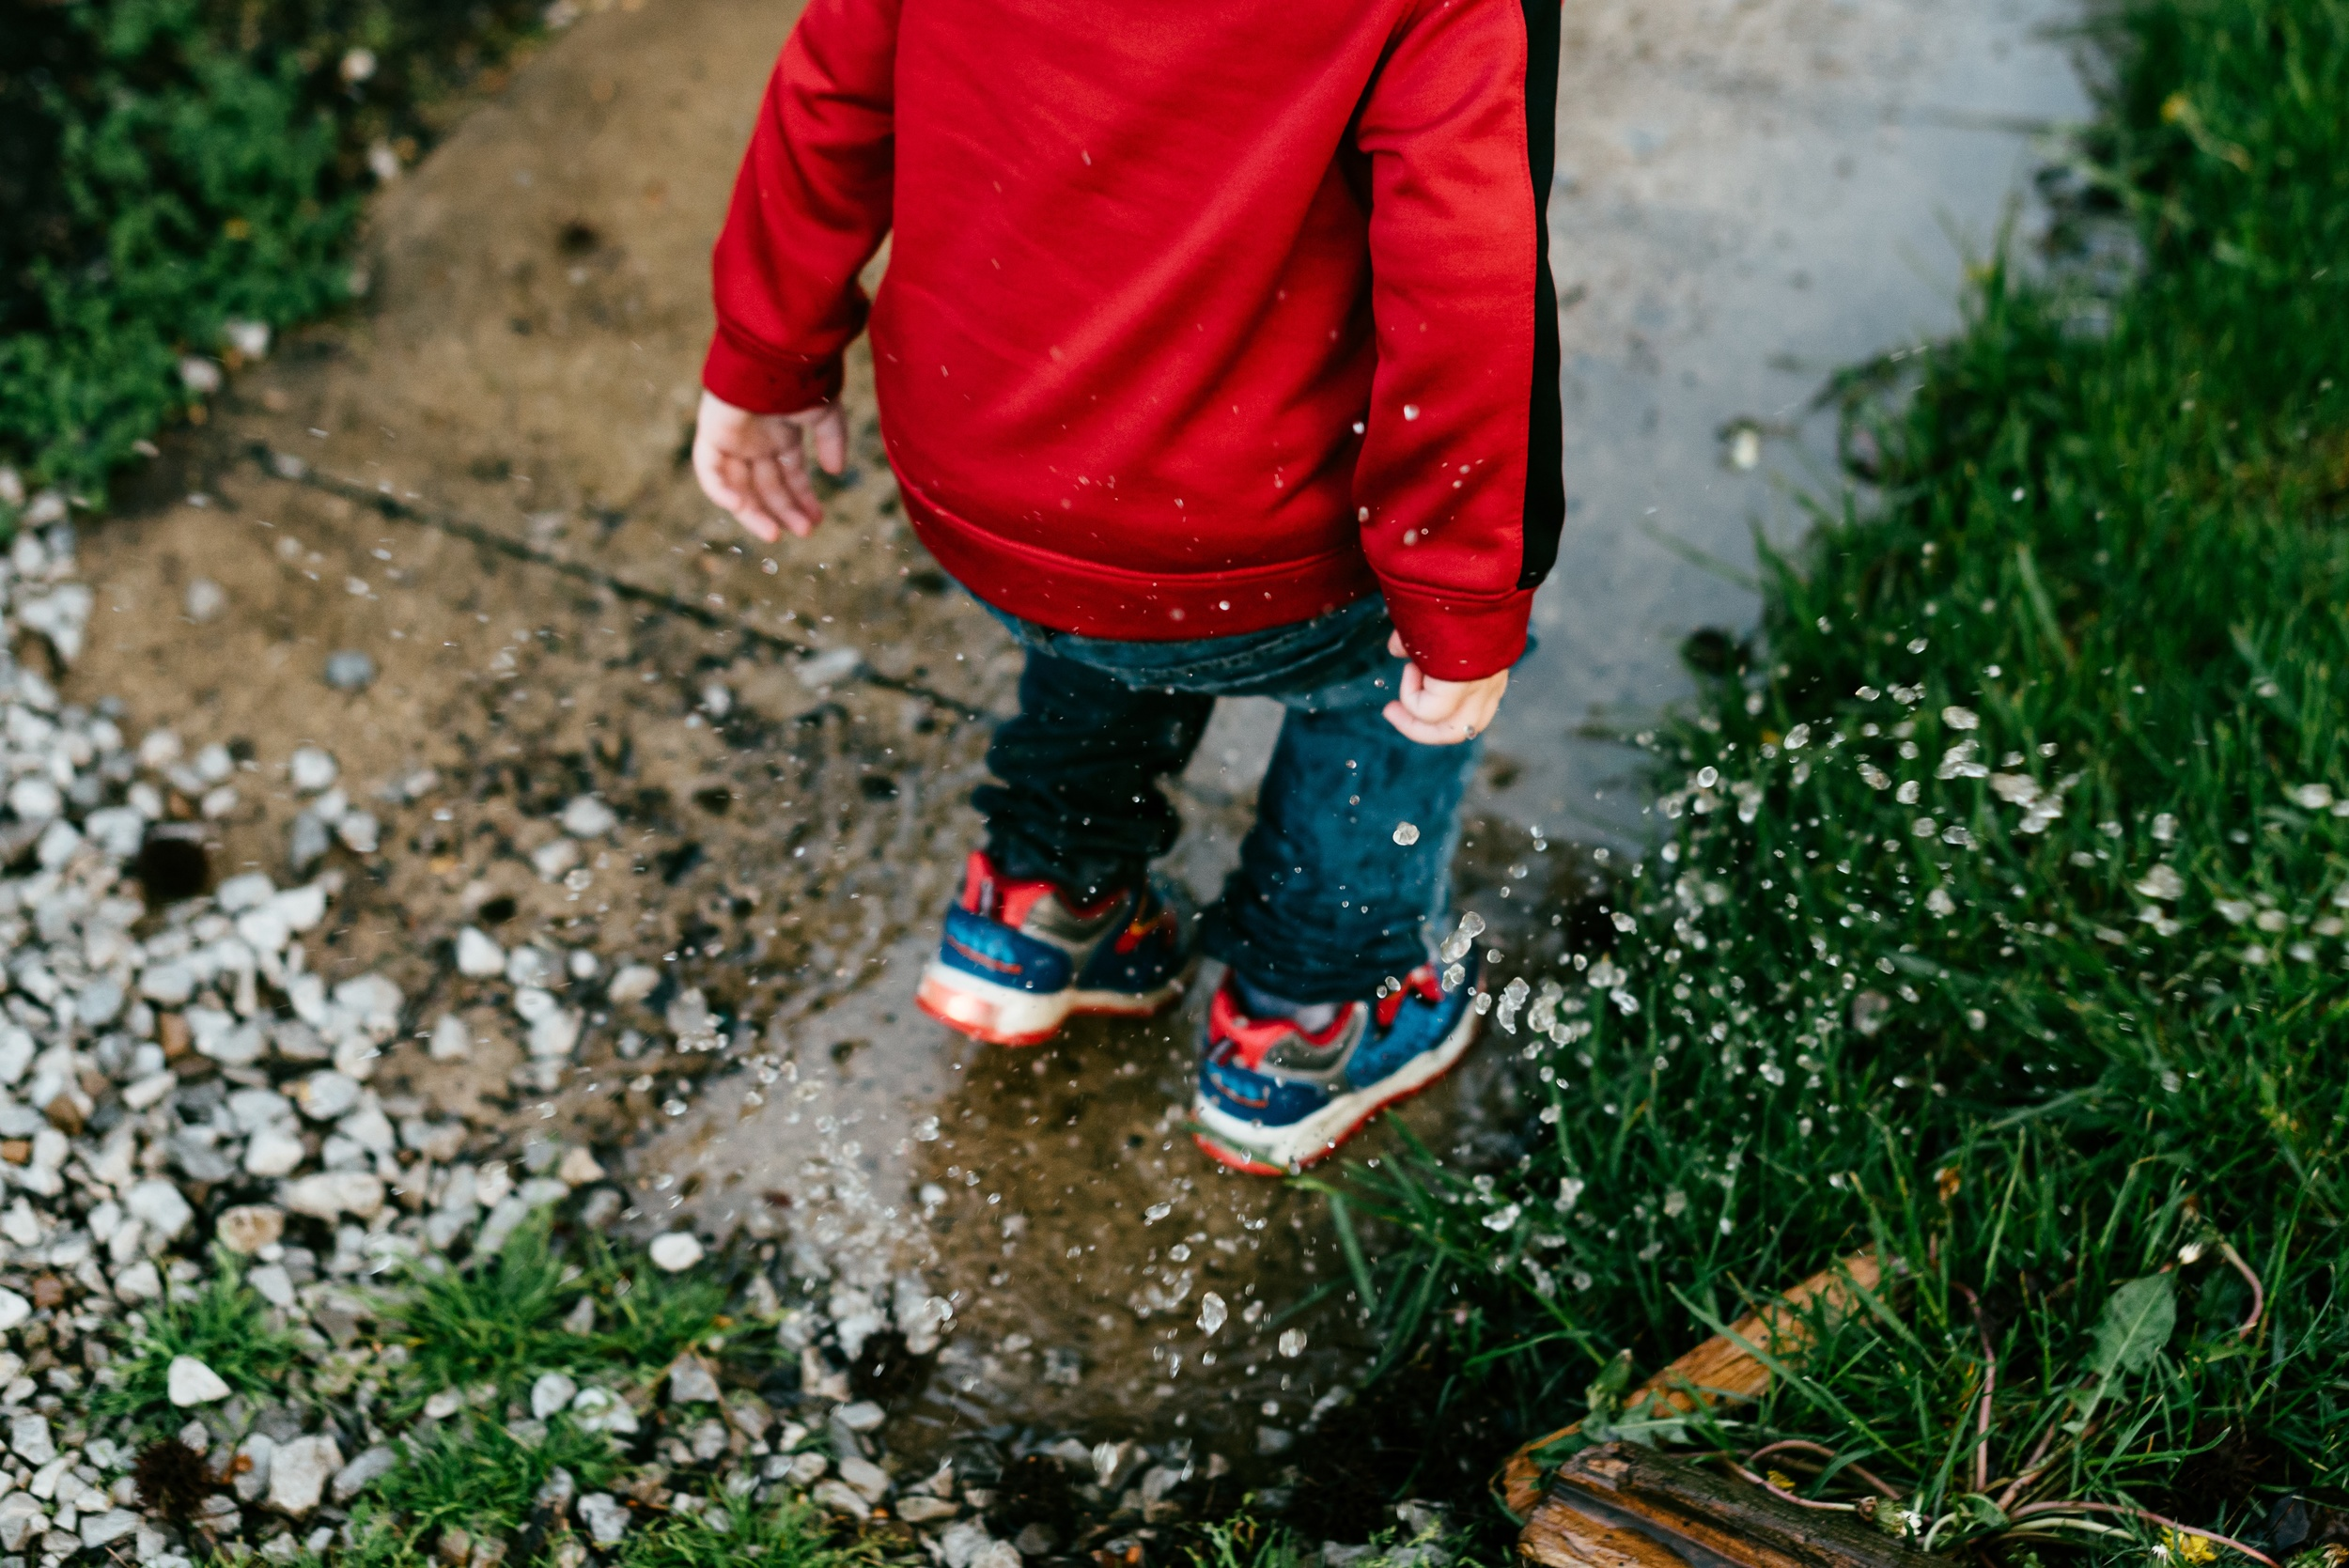 A child in a red coat splashes in a rain puddle on the sidewalk.